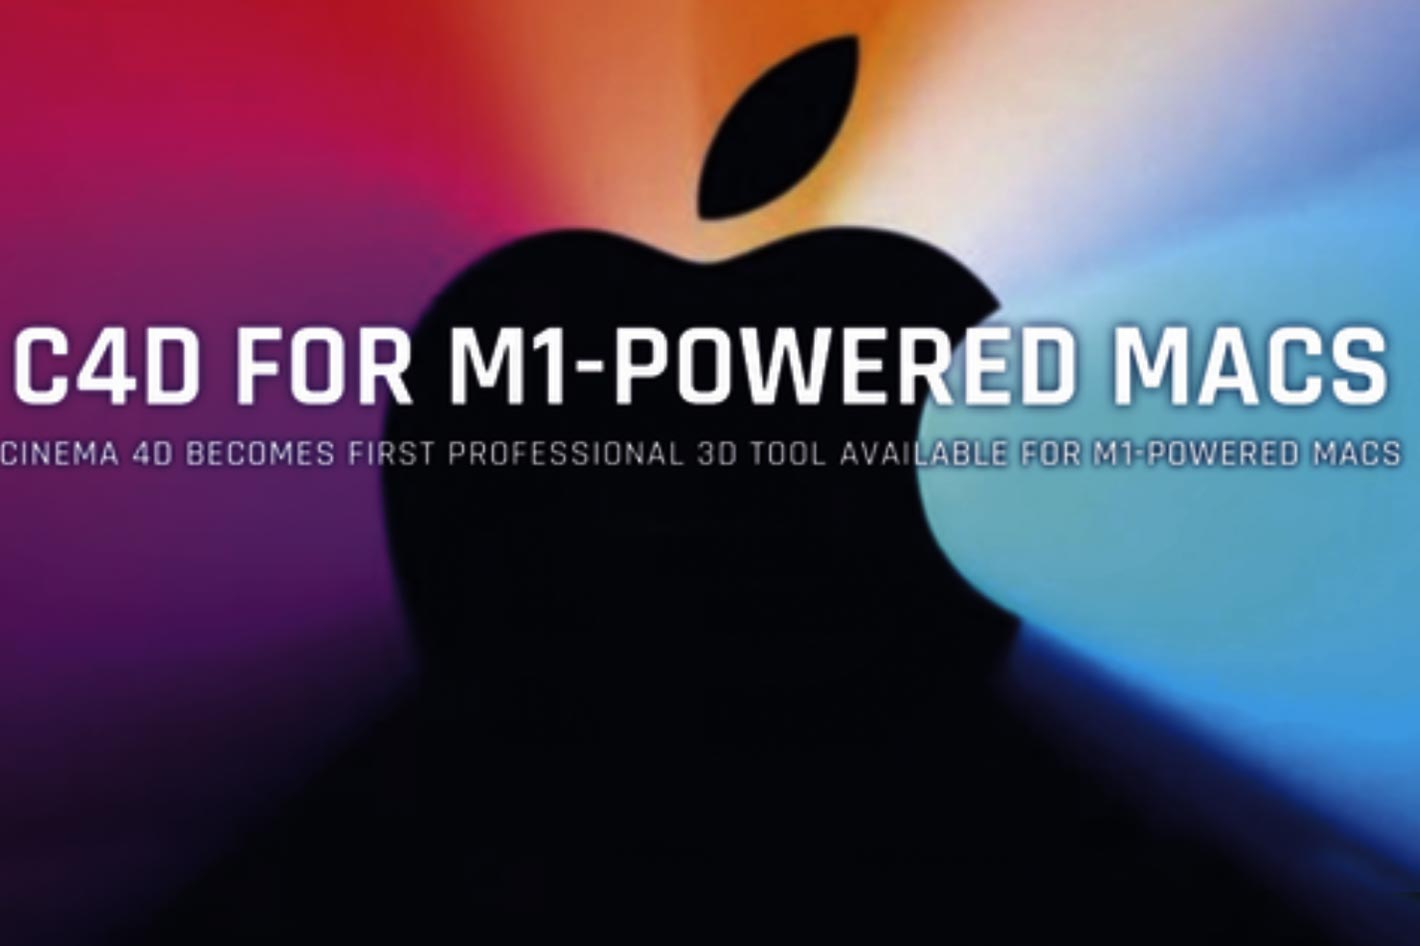 Cinema 4D and Cinebench ready for M1-powered Macs